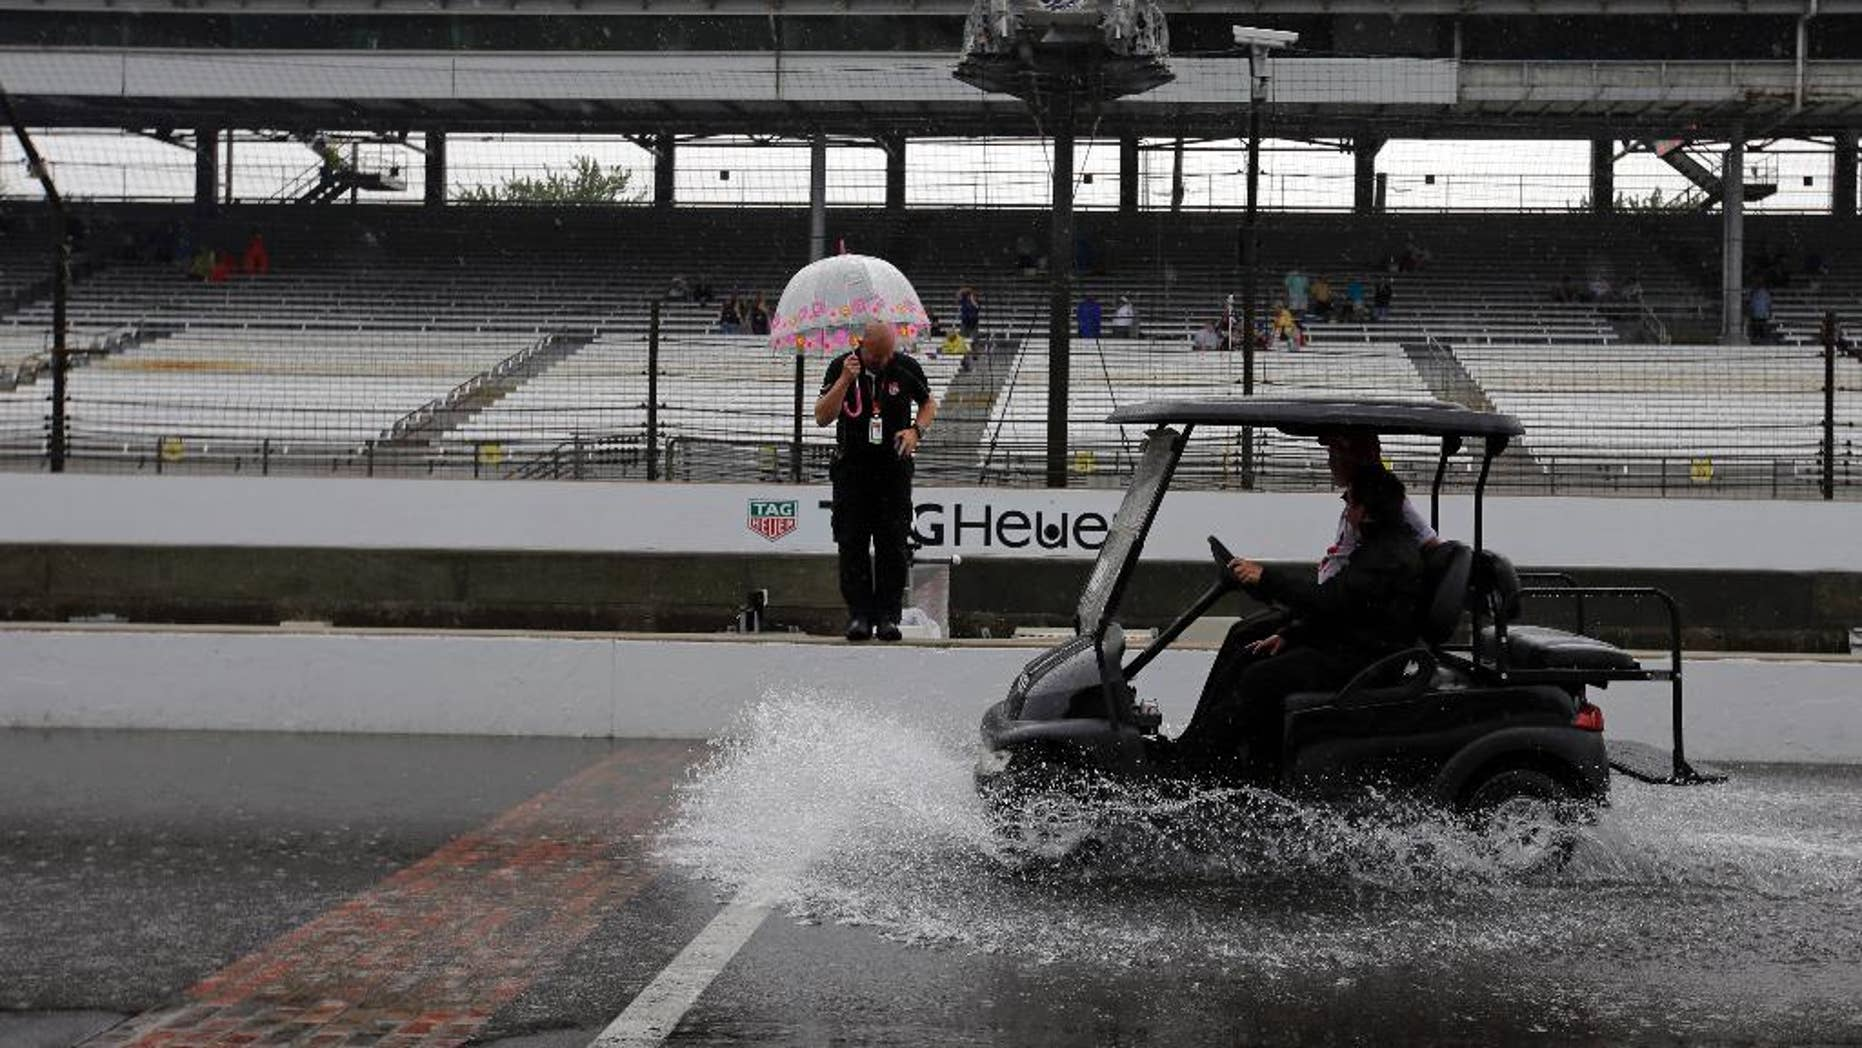 A cart splashes up water as its crosses the start/finish line as rain closed the track on the first day of qualifications for the Indianapolis 500 auto race at Indianapolis Motor Speedway in Indianapolis, Saturday, May 16, 2015.  (AP Photo/Darron Cummings)